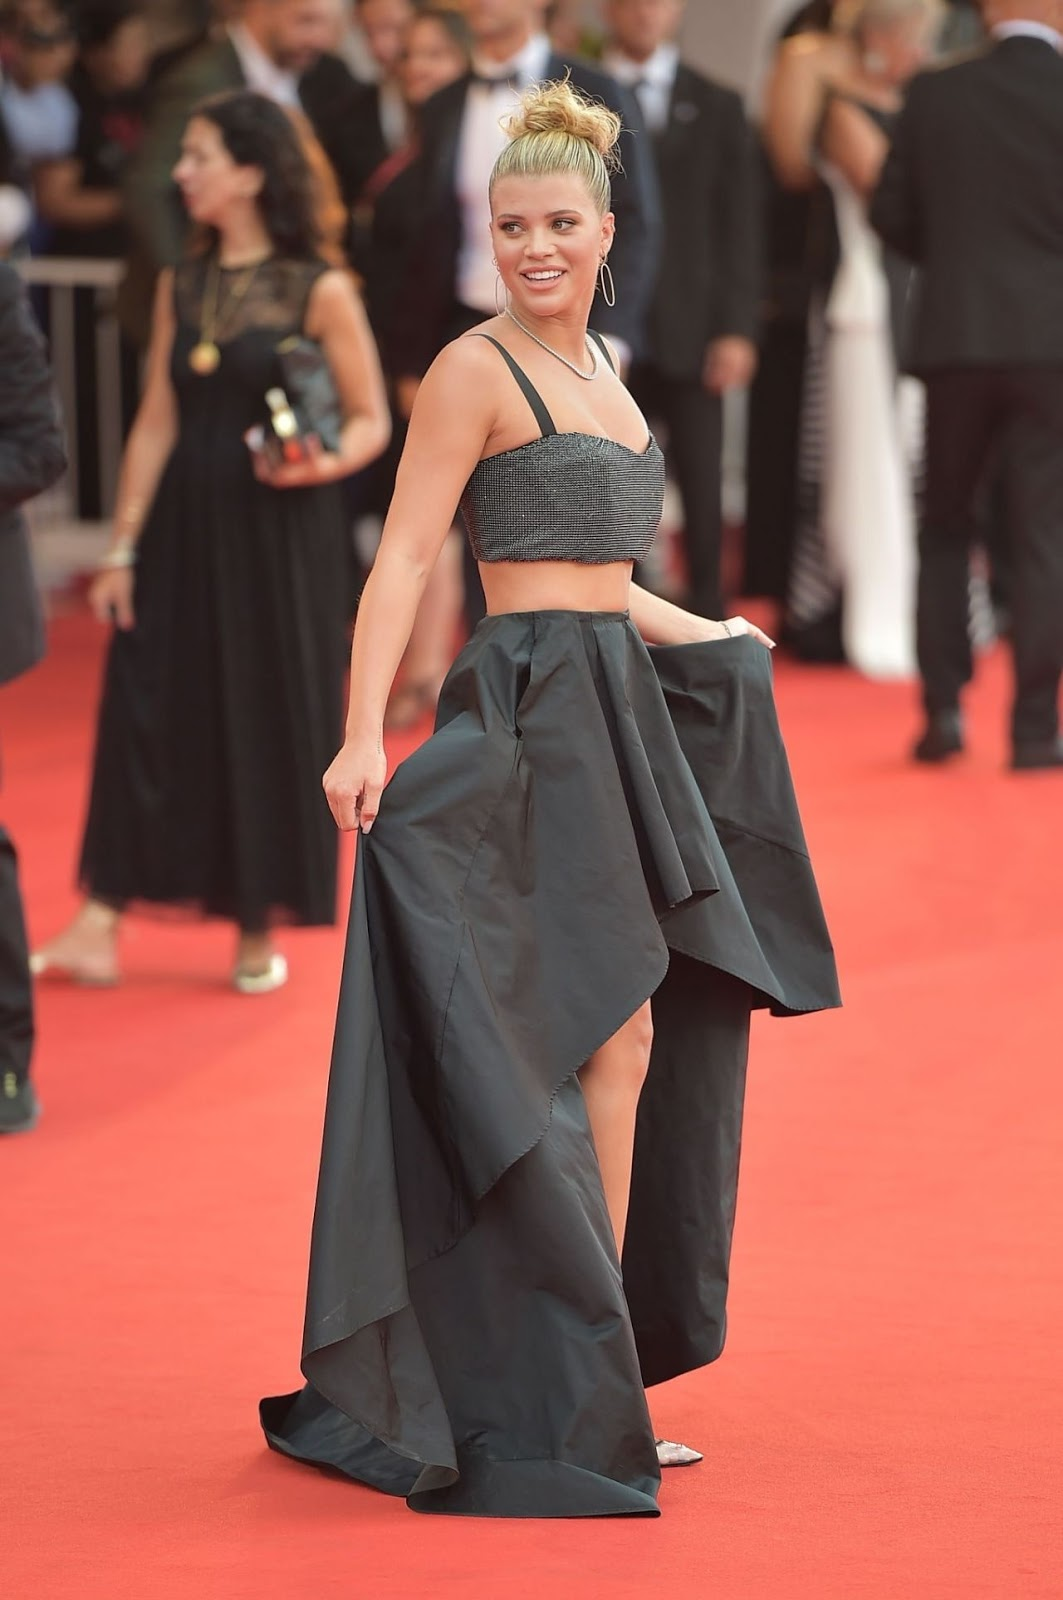 Sofia Richie on Red Carpet – La Vérité Screening in Venice